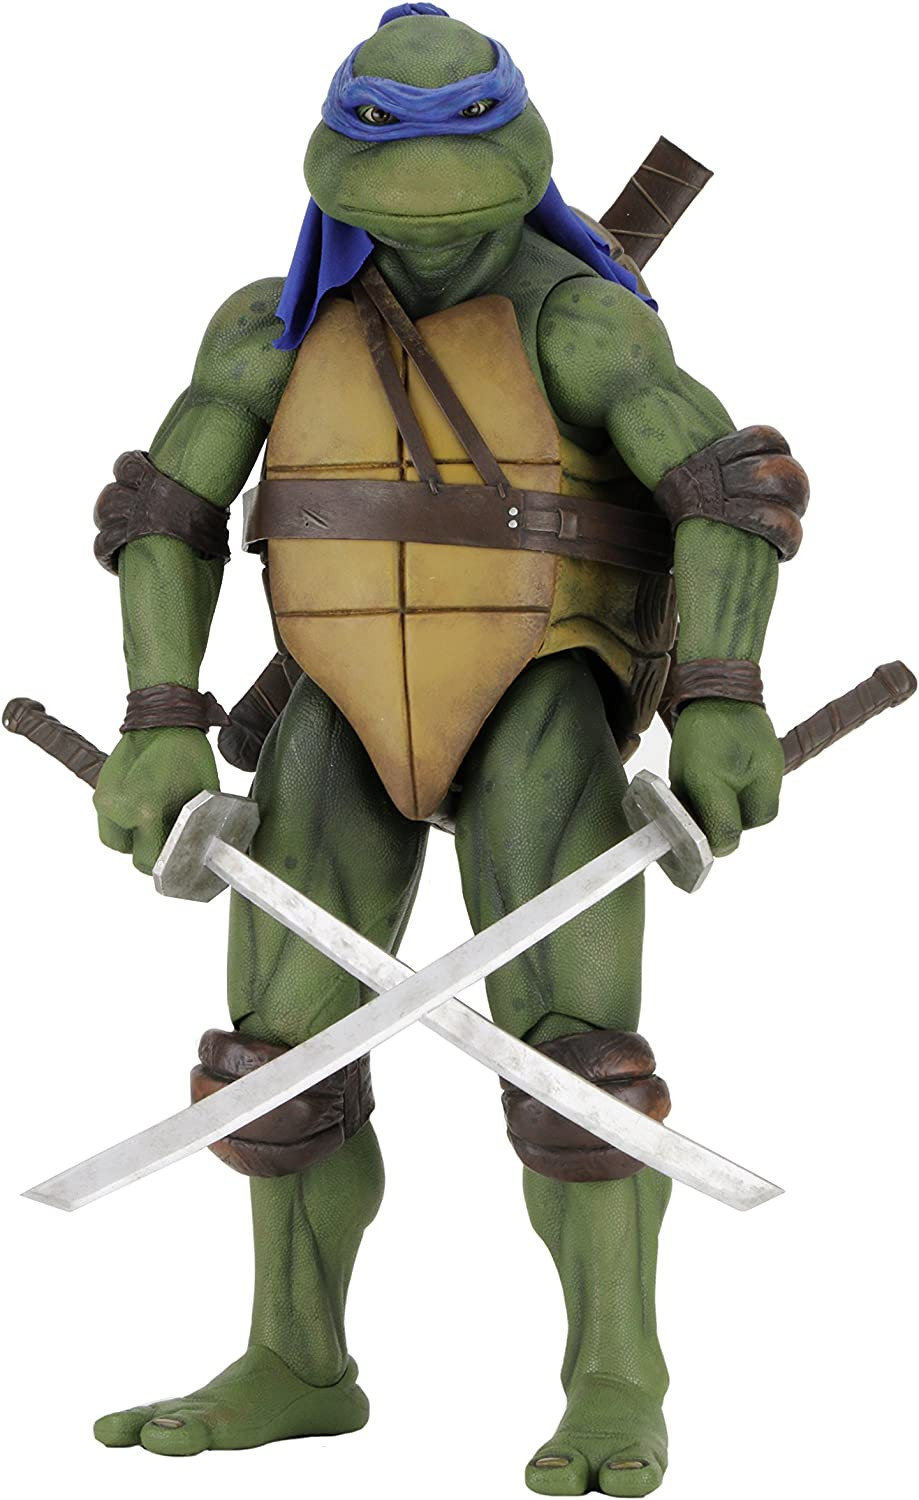 NECA Teenage Mutant Ninja Turtles Leonardo 1/4 Scale Action Figure